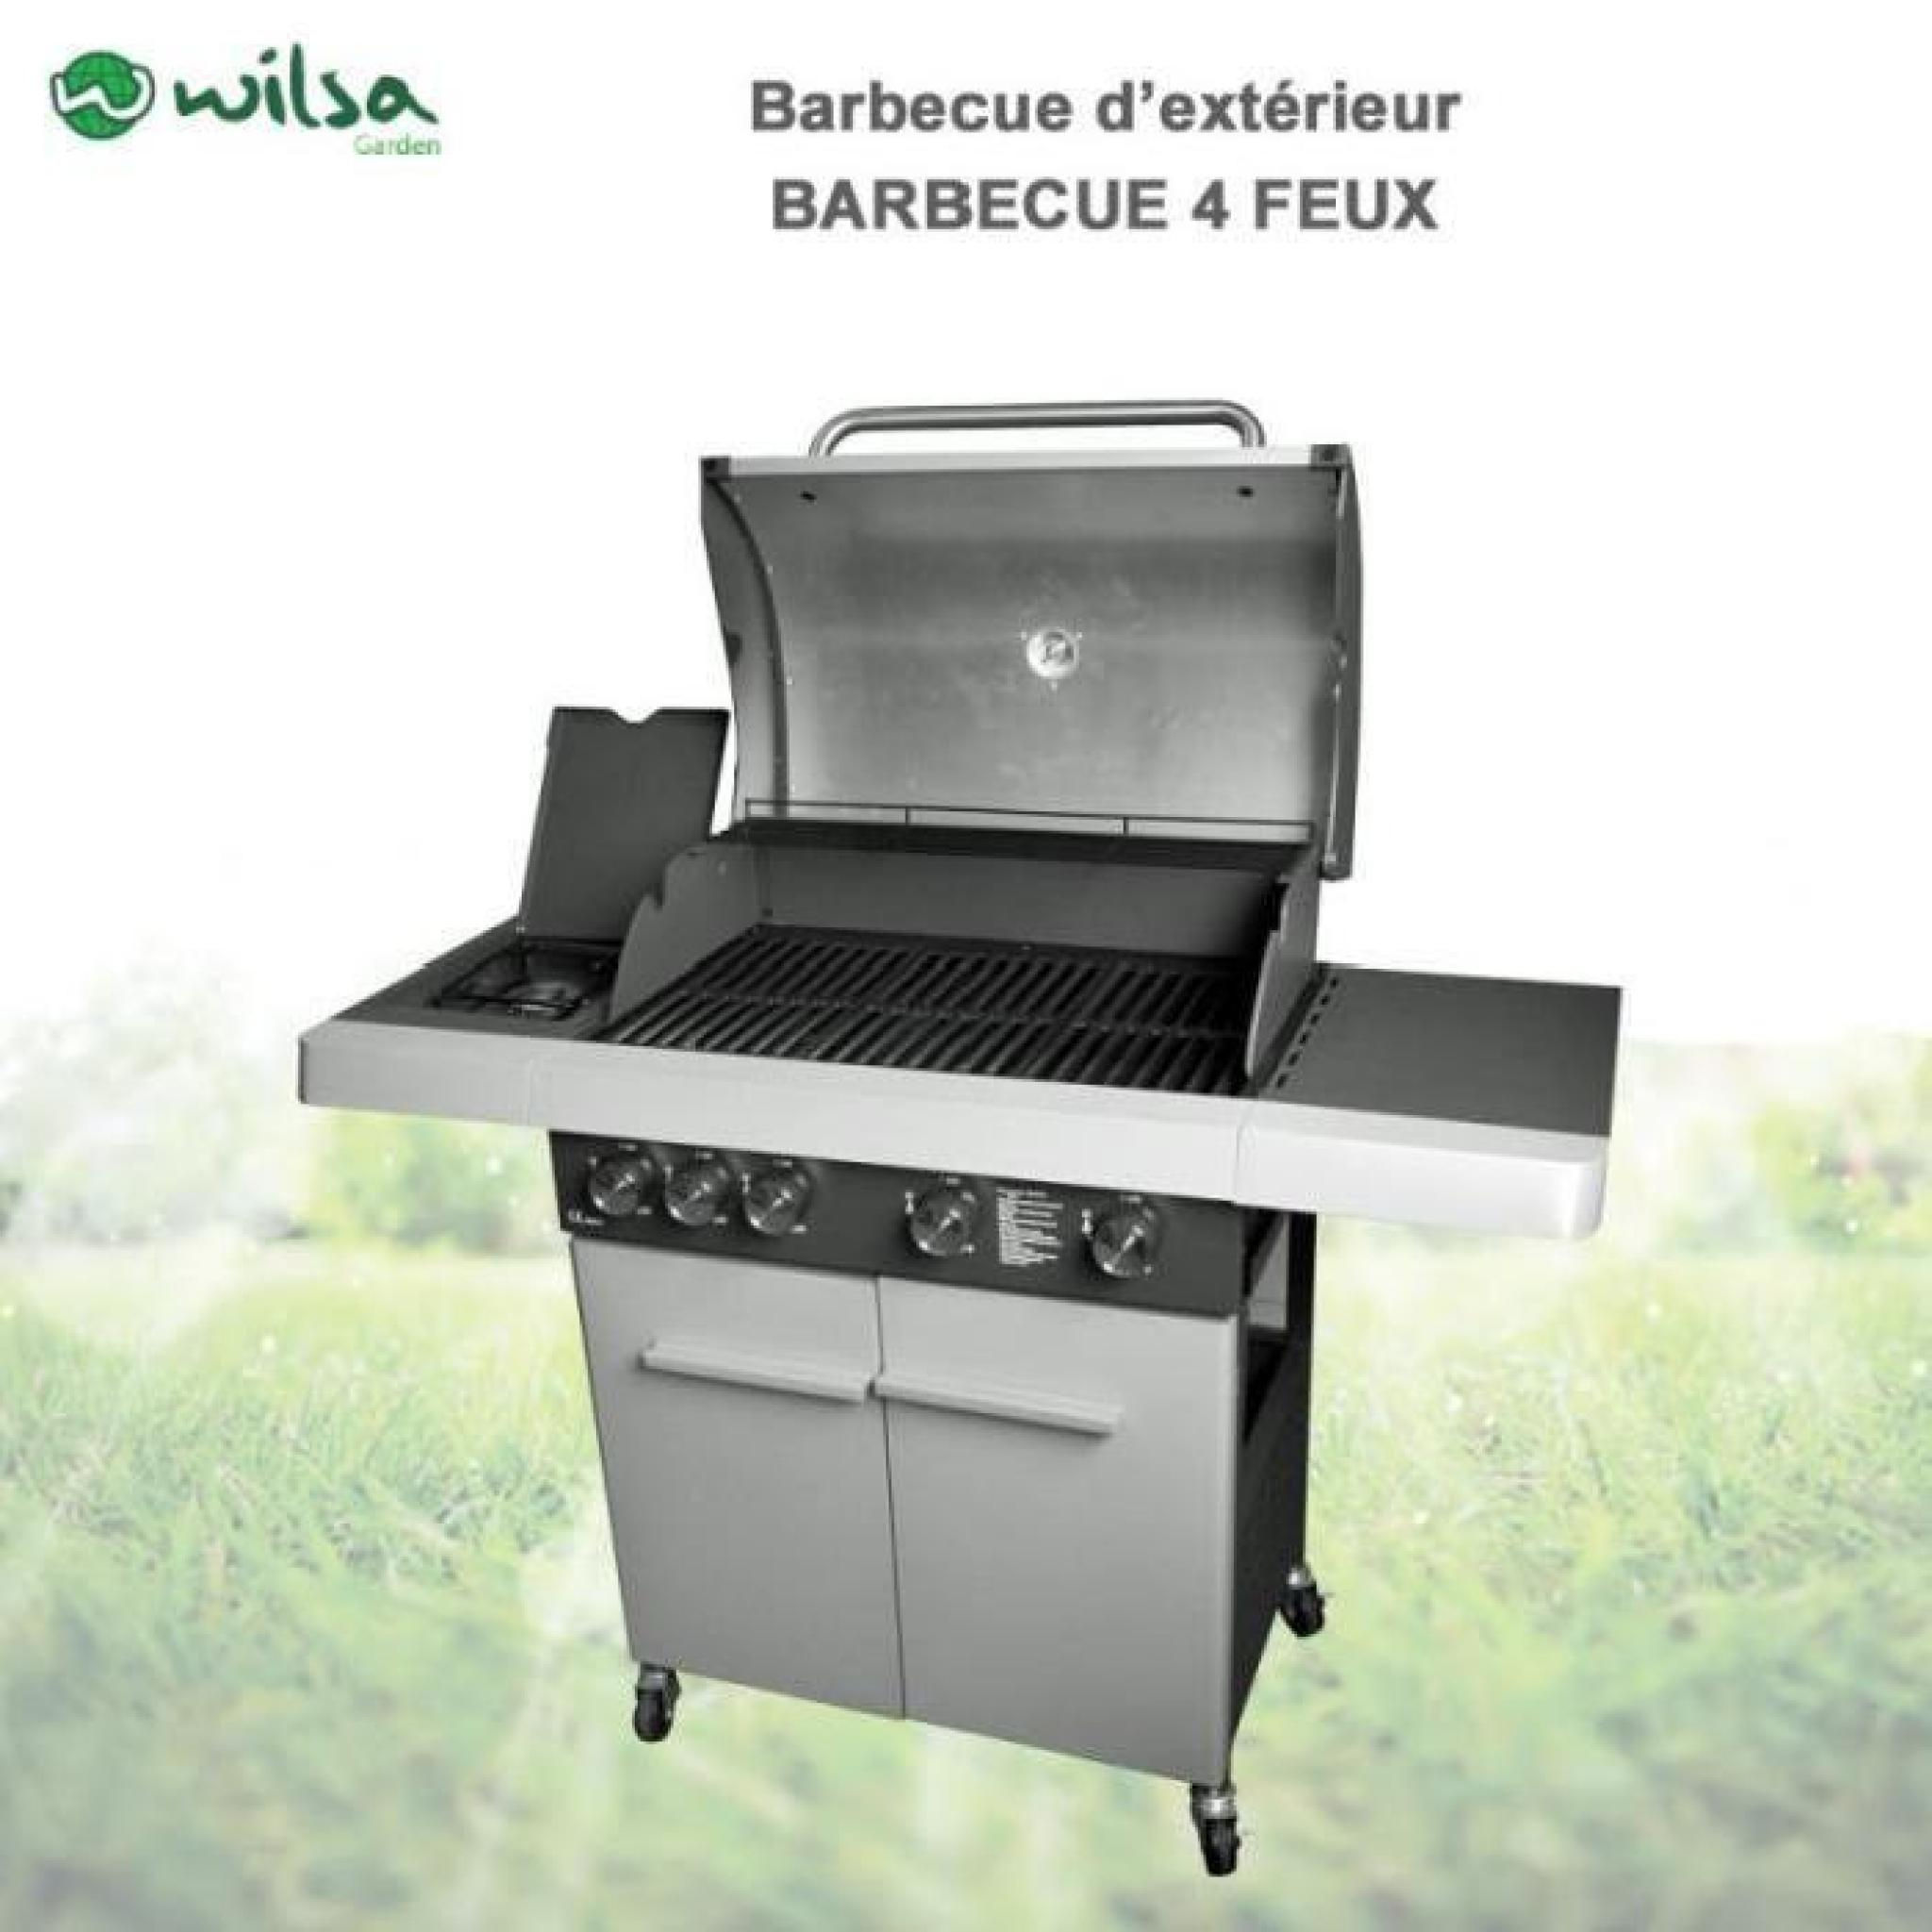 barbecue plancha gaz pas cher barbecue gaz plancha 1084206 chariot plancha castorama barbecue. Black Bedroom Furniture Sets. Home Design Ideas